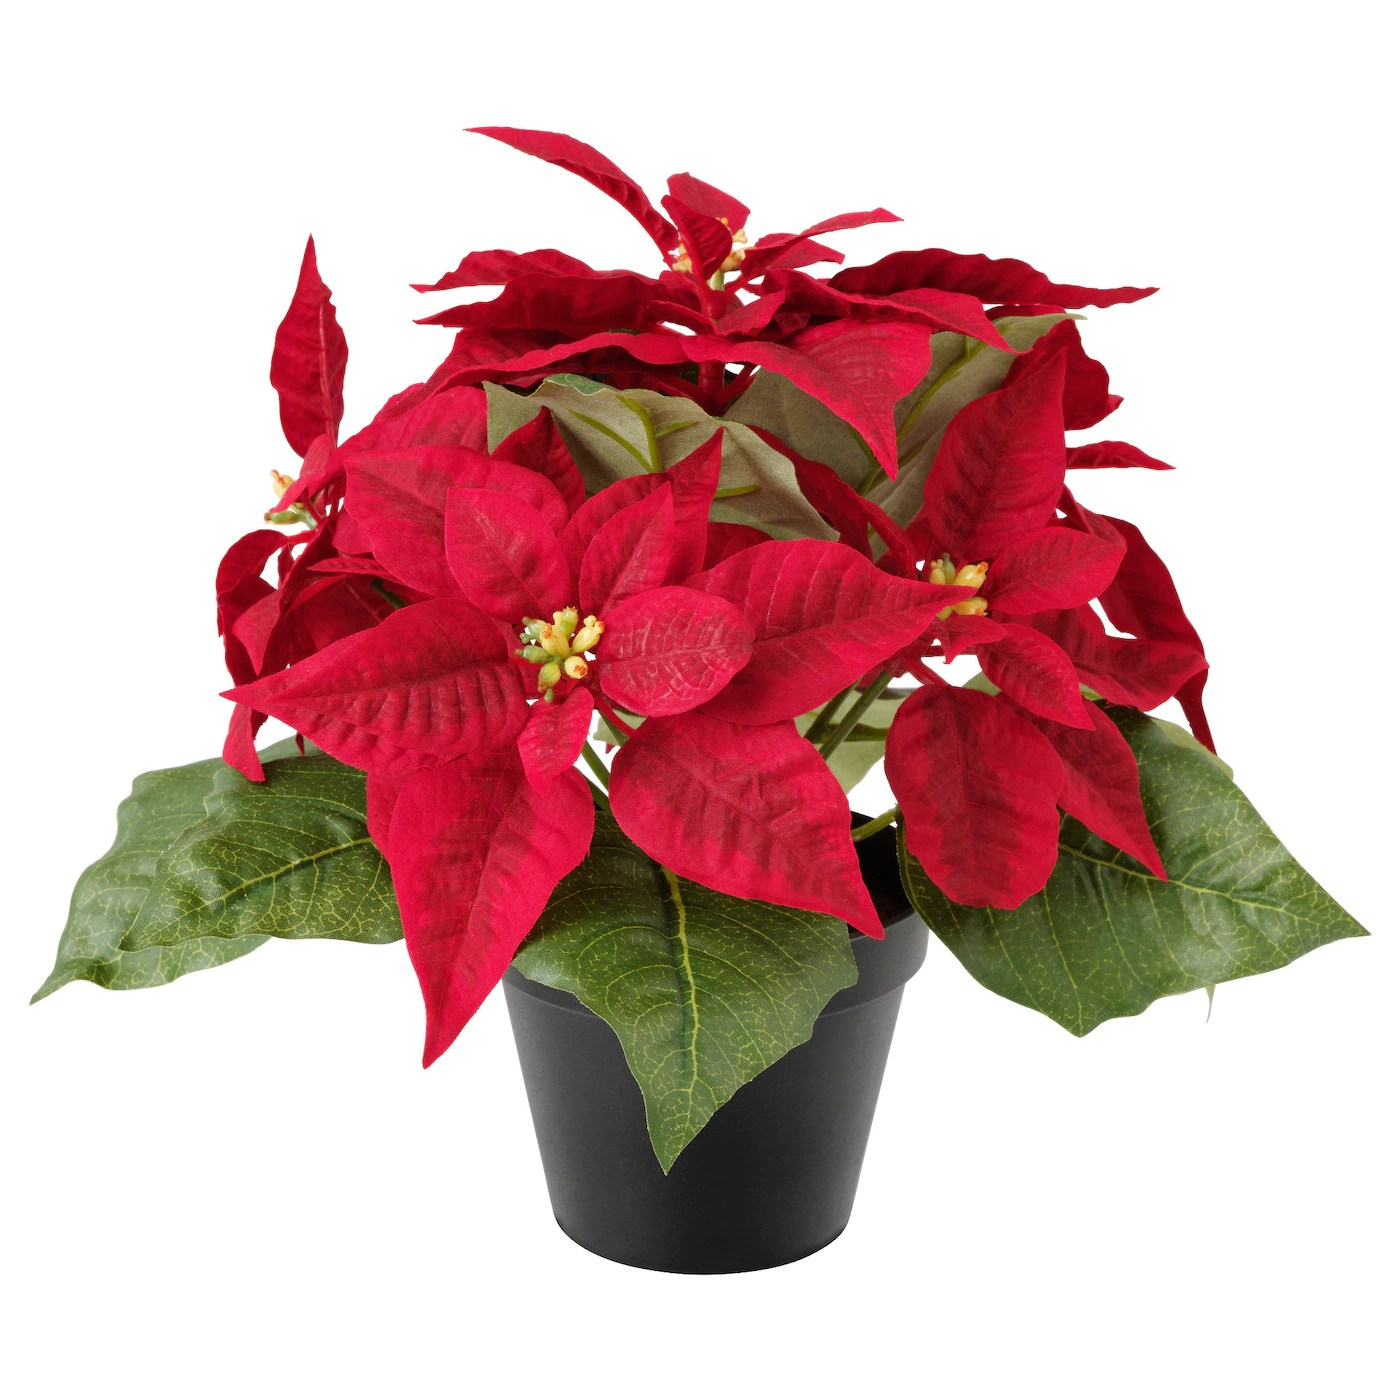 https://i0.wp.com/www.ikea.com/gb/en/images/products/fejka-artificial-potted-plant-poinsettia-red__0538278_pe651824_s5.jpg